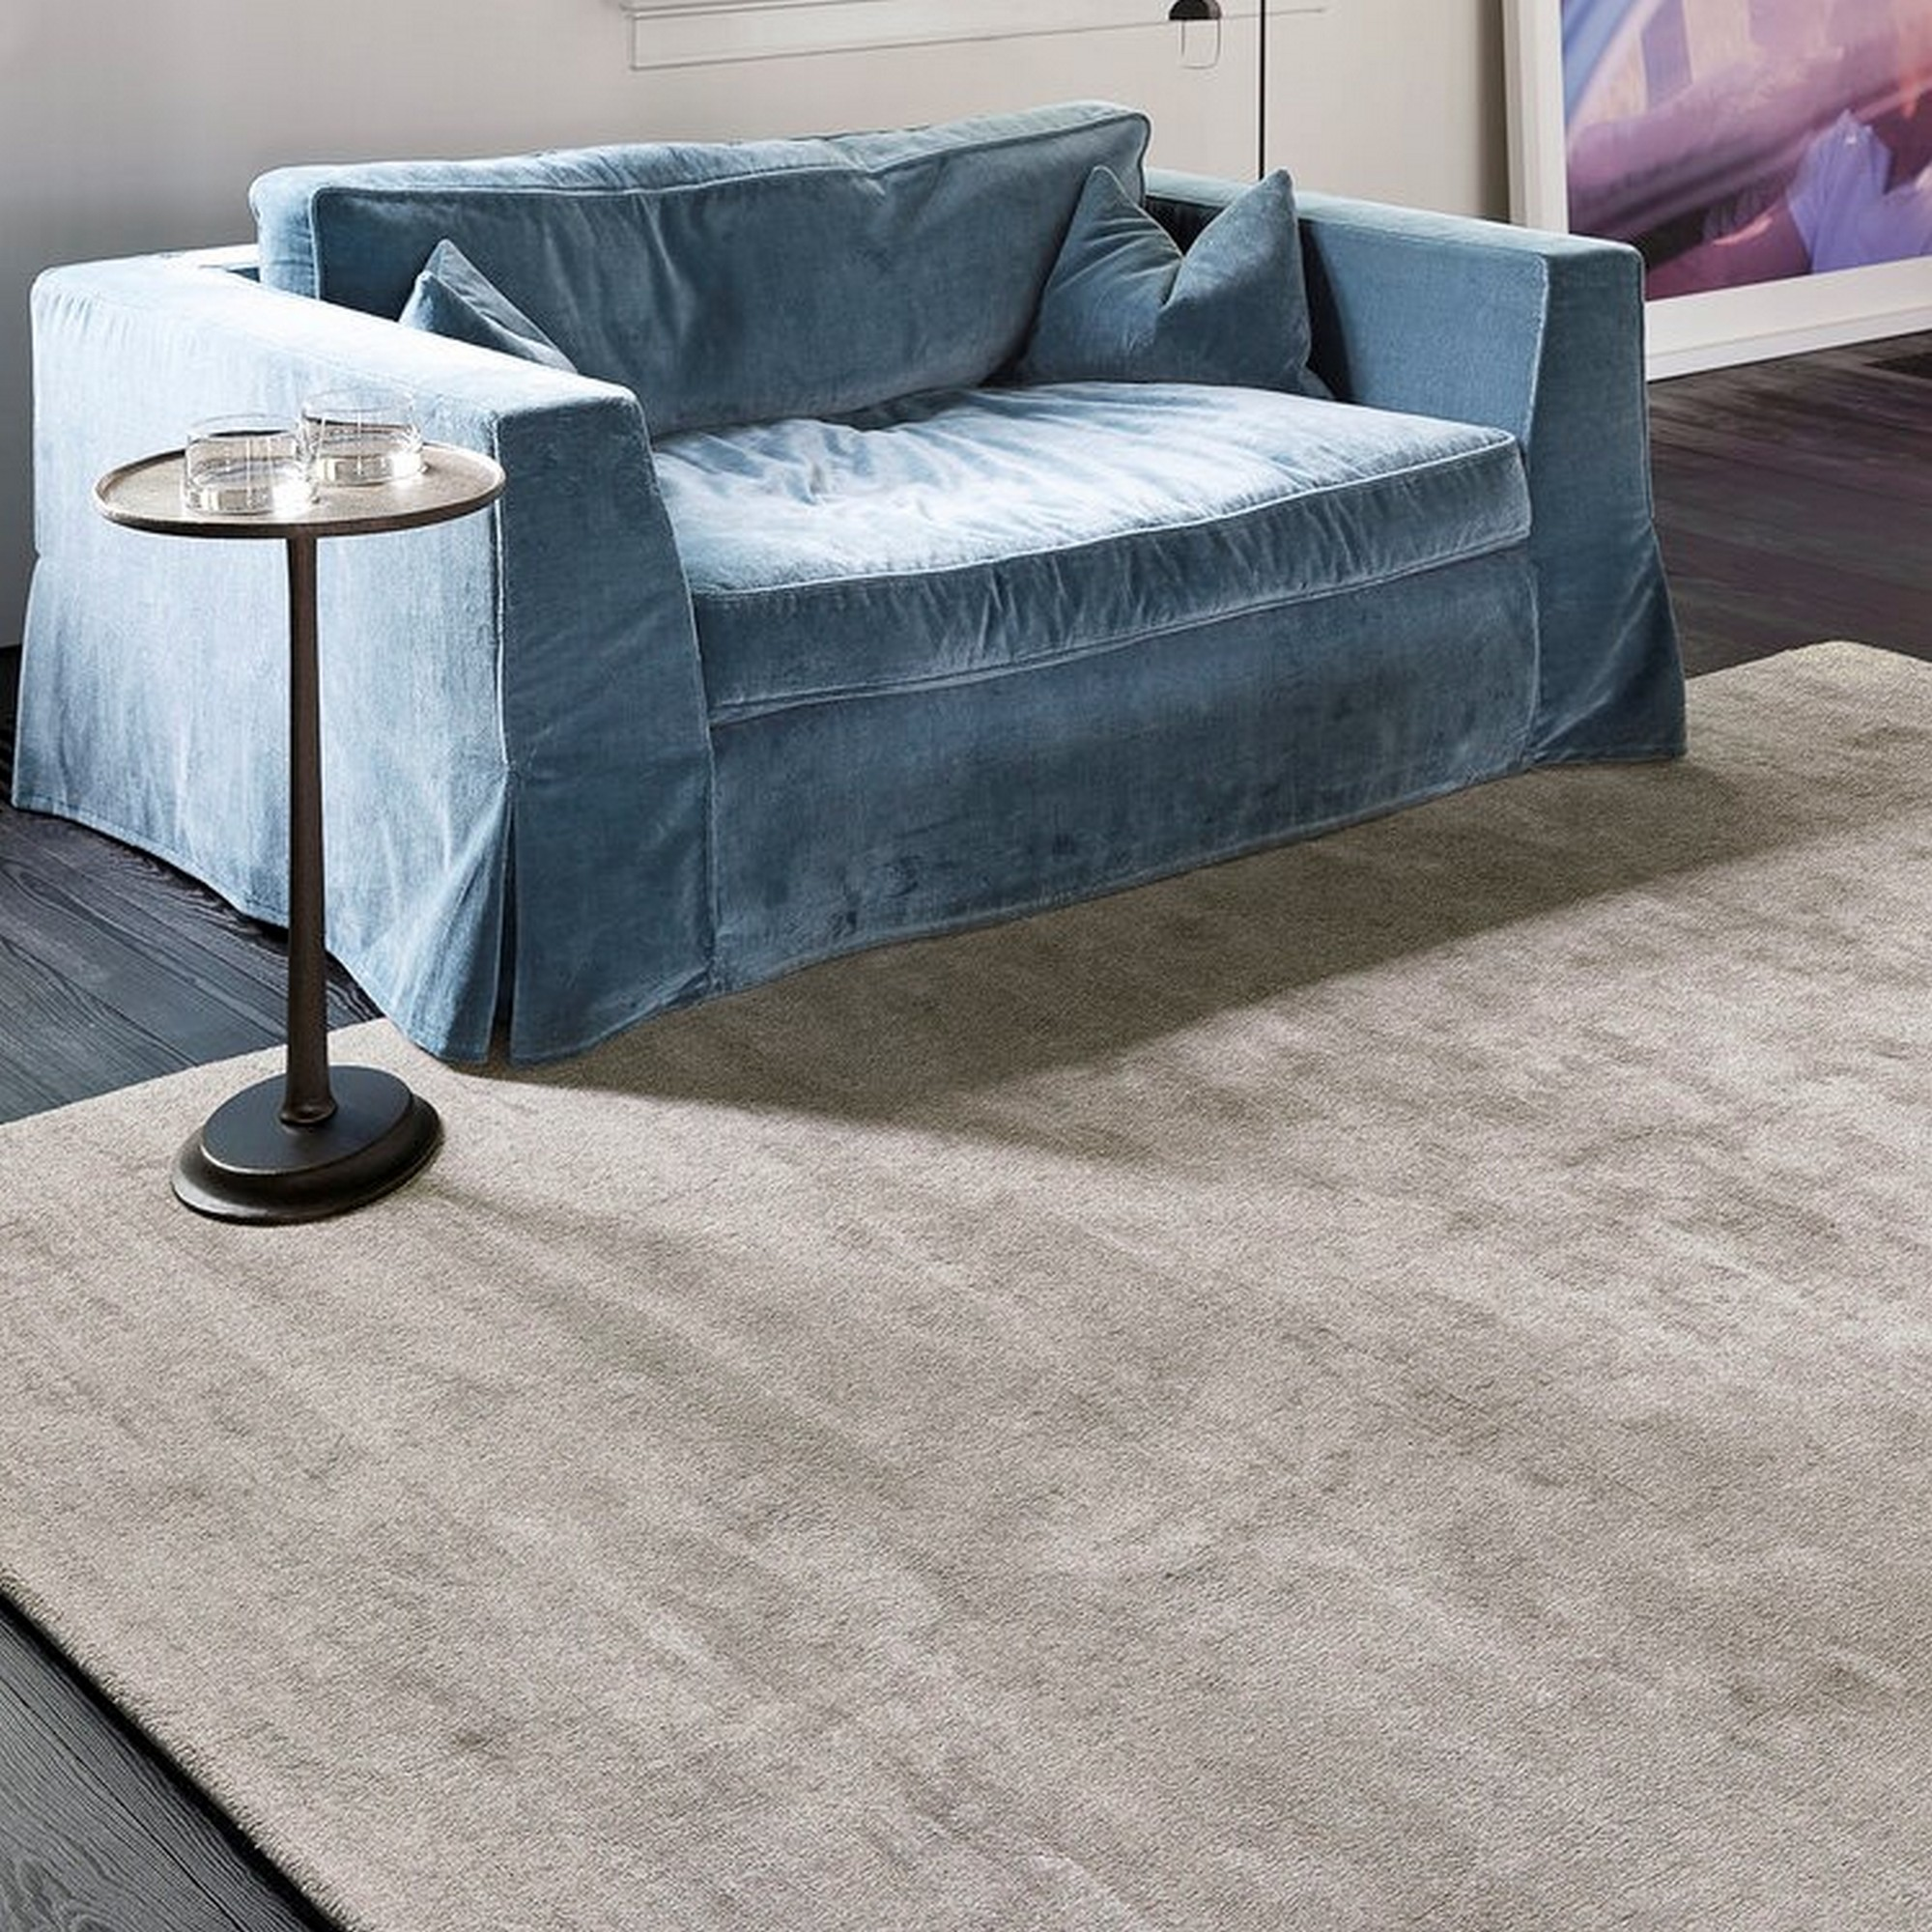 uni reflect rugs    in taupe by ligne pure  free uk  - uni reflect rugs    in taupe by ligne pure